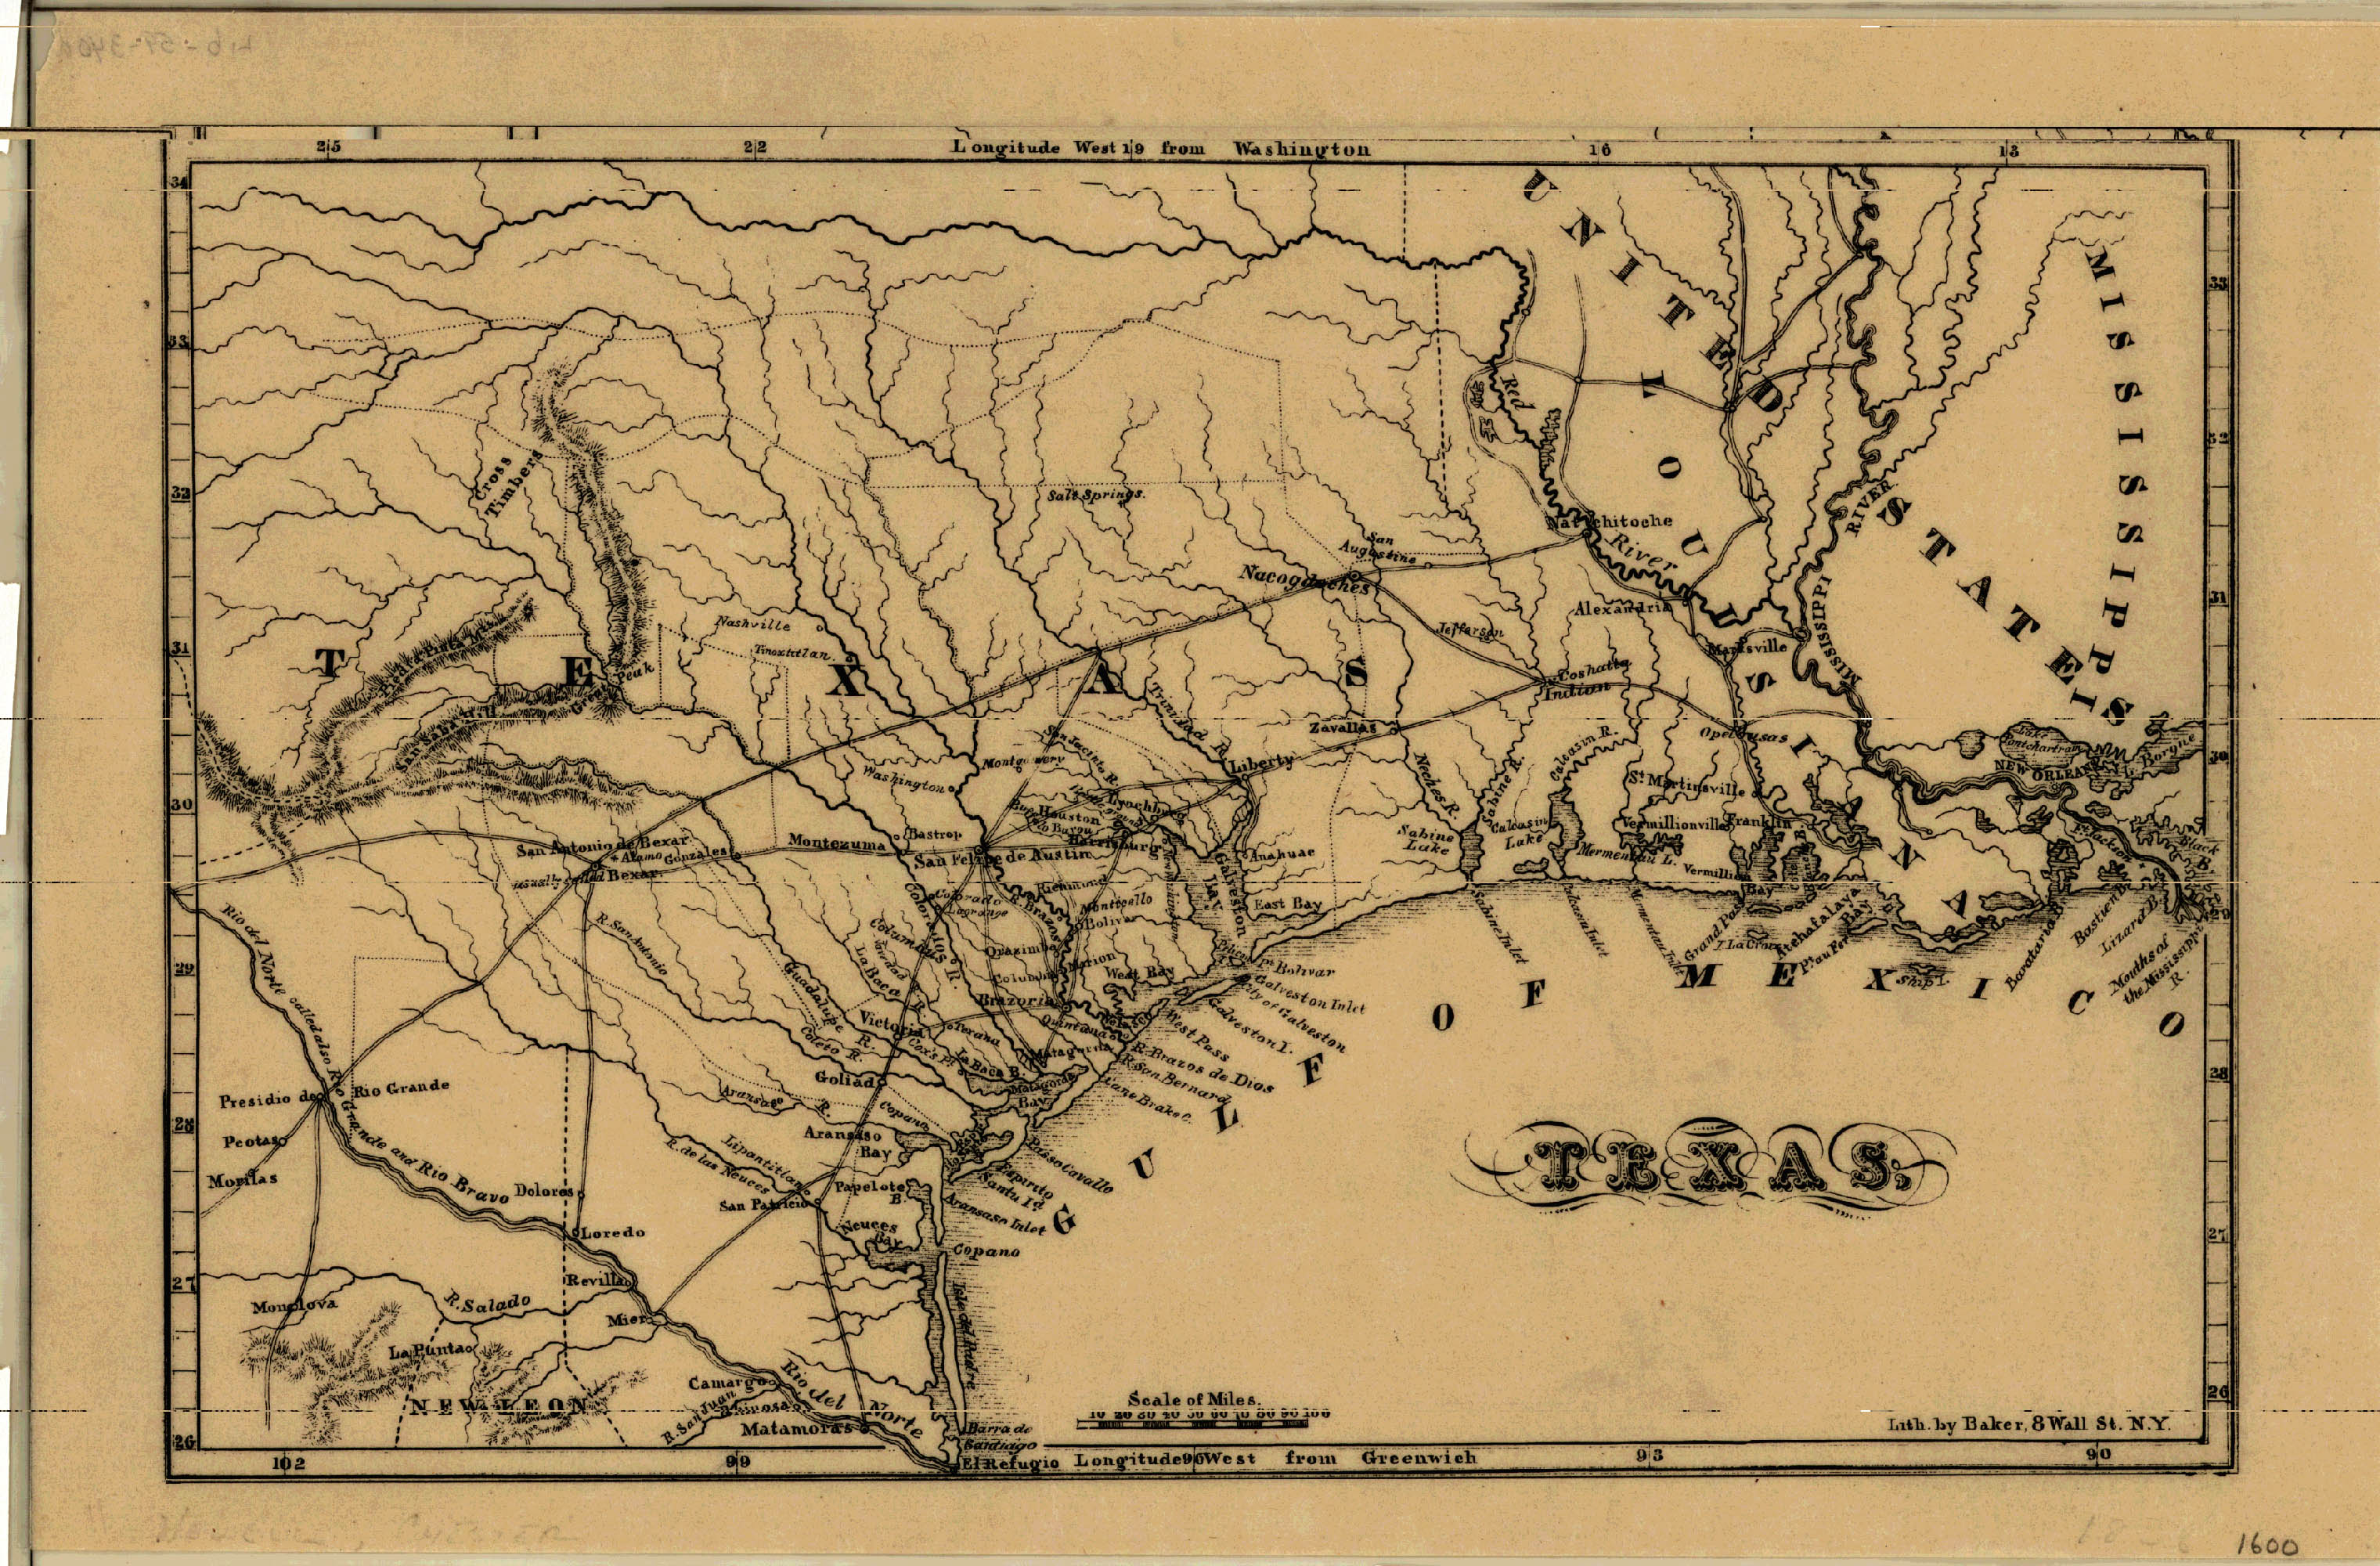 File:1838 Map of Texas.jpg